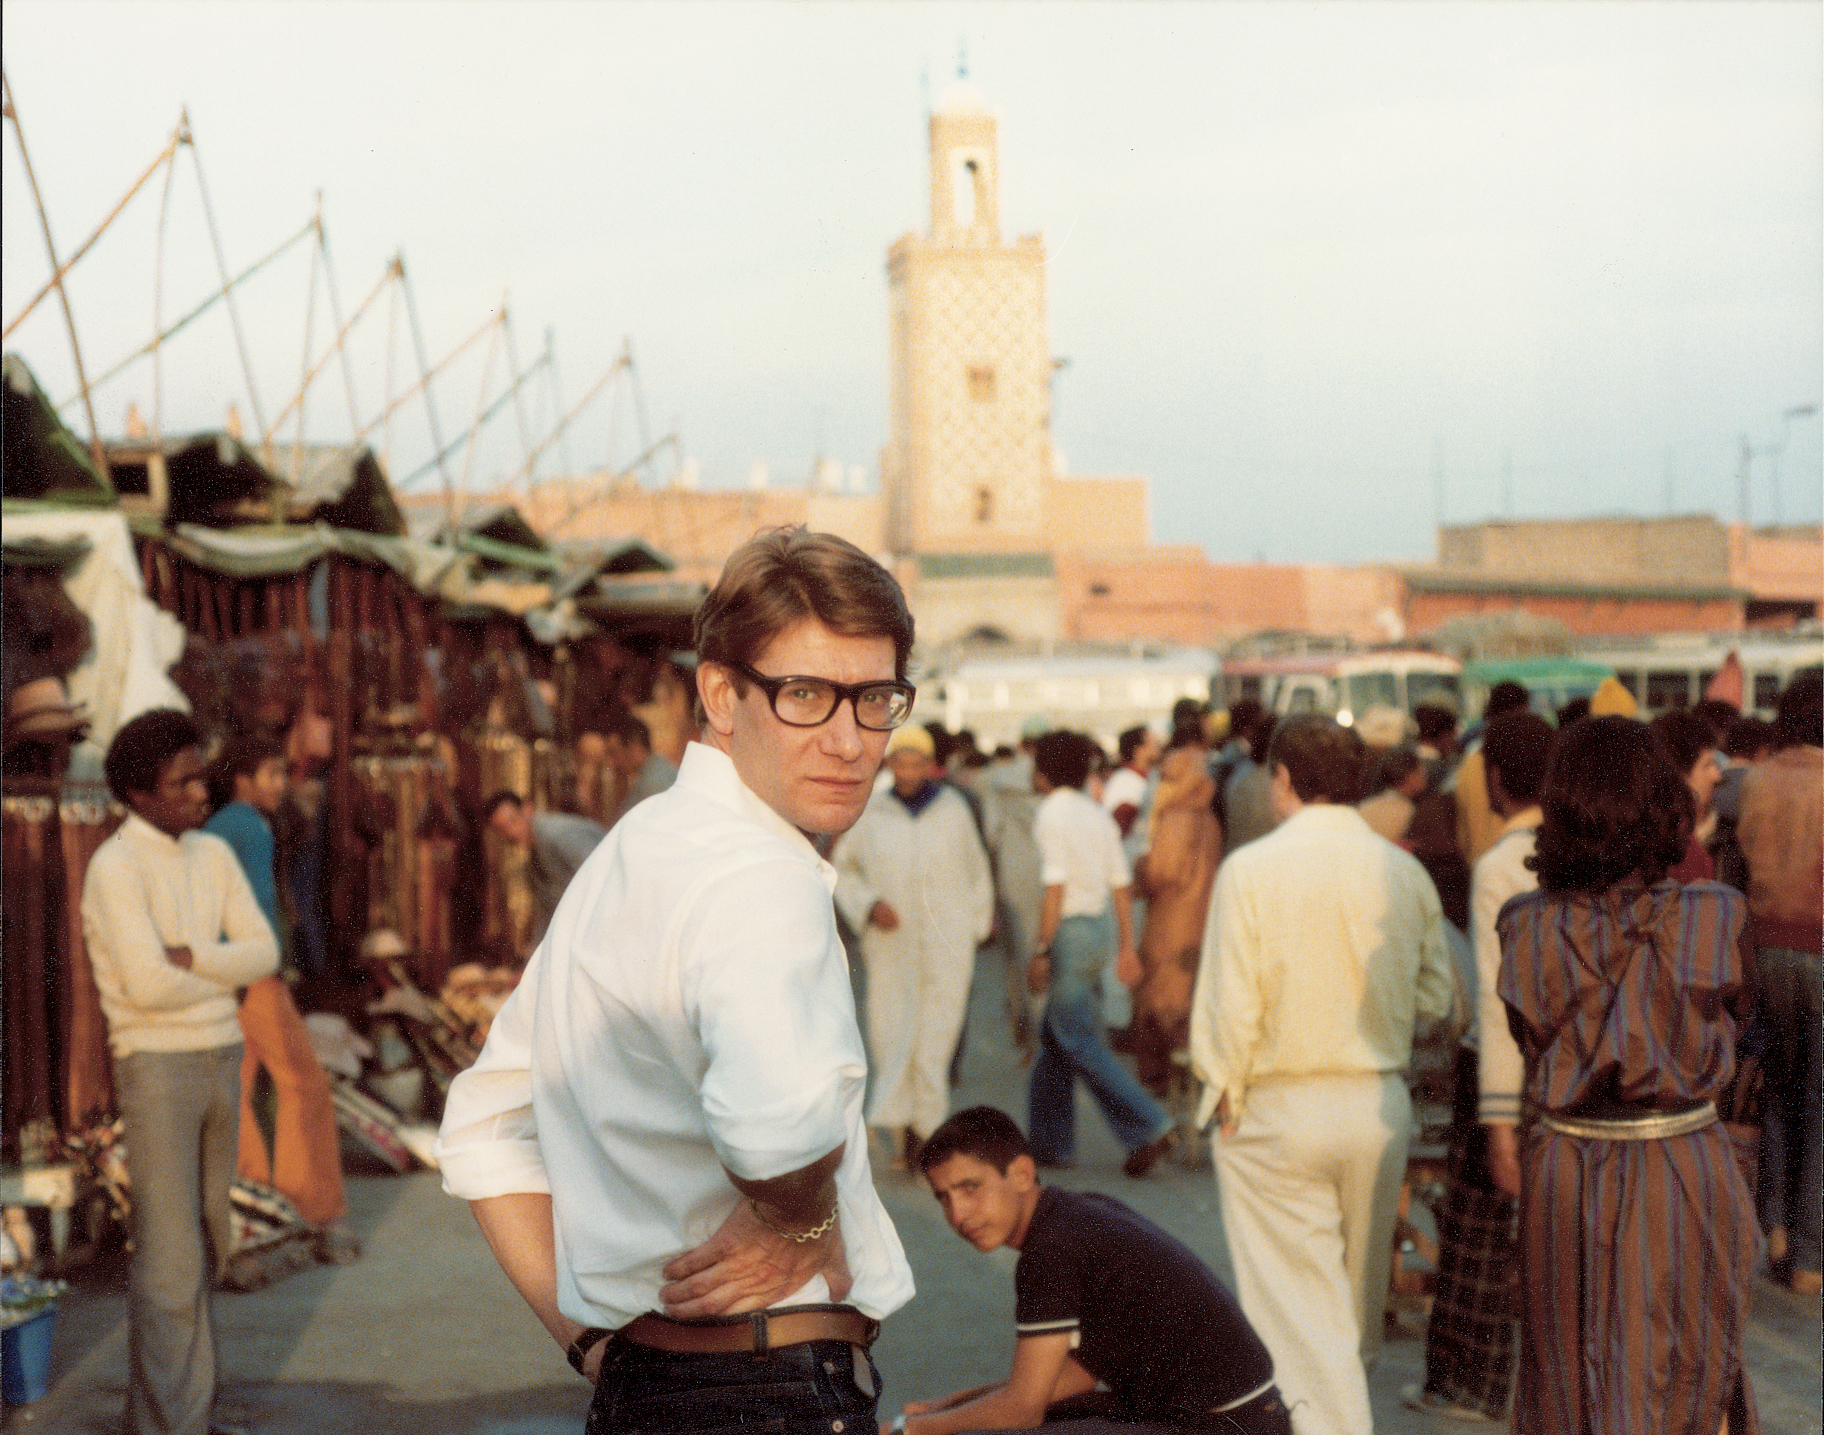 Yves Saint Laurent in Place Djemaa El Fna. (Reginald Gray/PA)